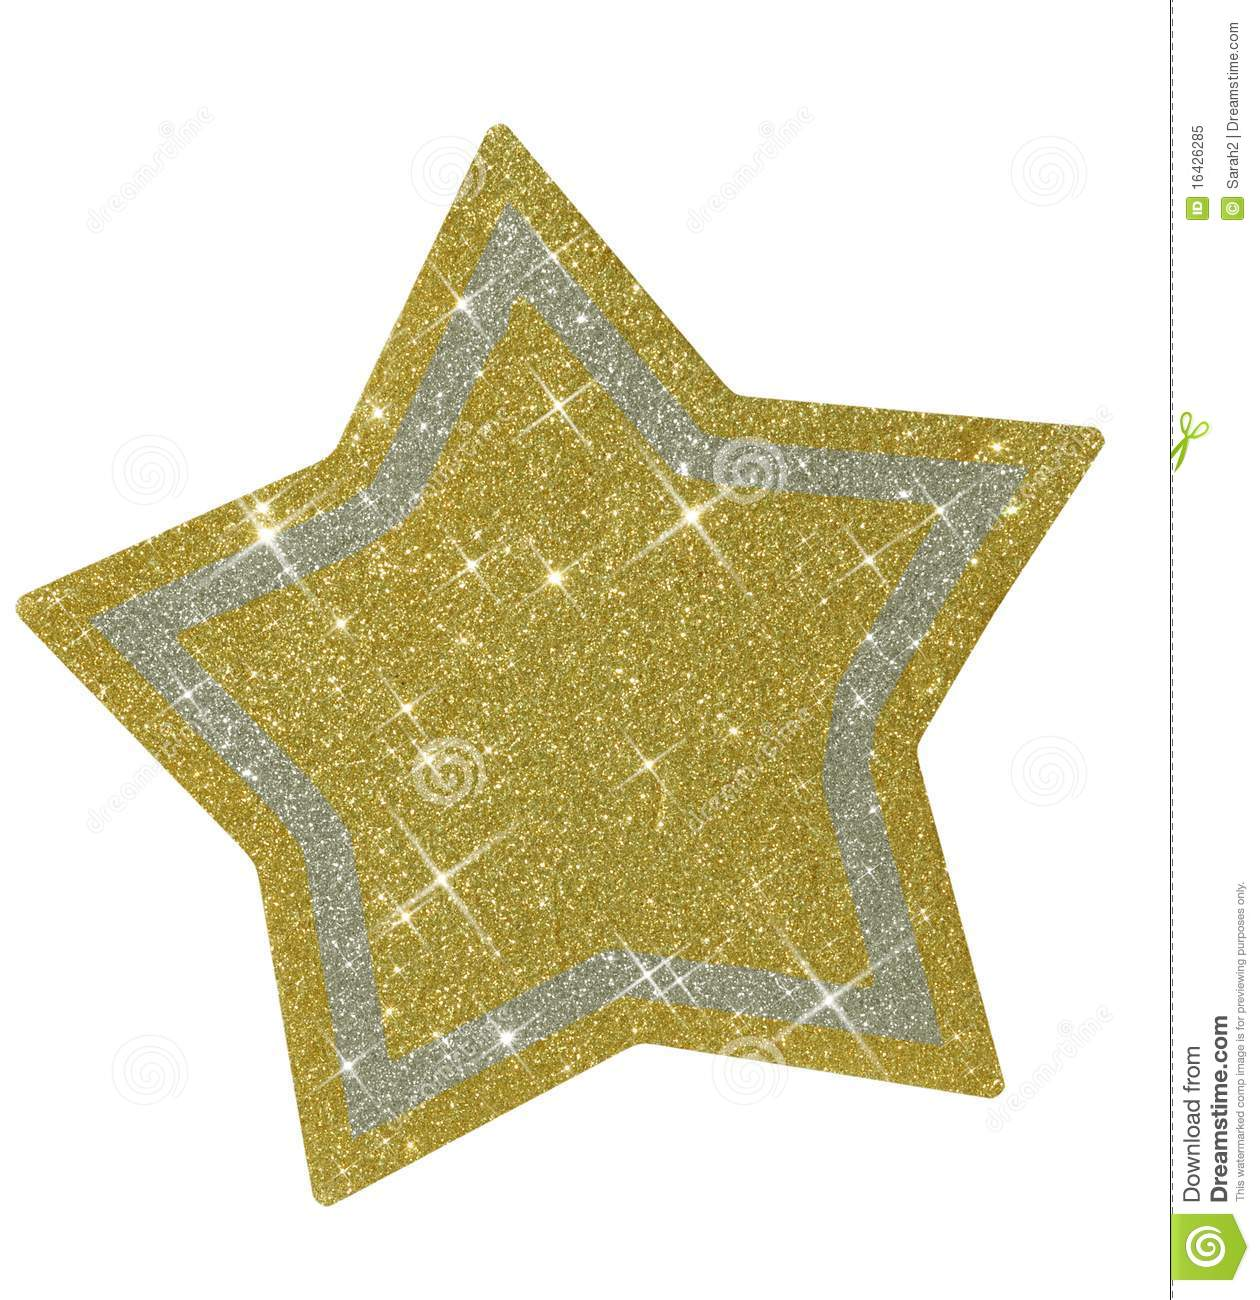 Christmas Glittery Star - Isolated Royalty Free Stock Photo - Image ...